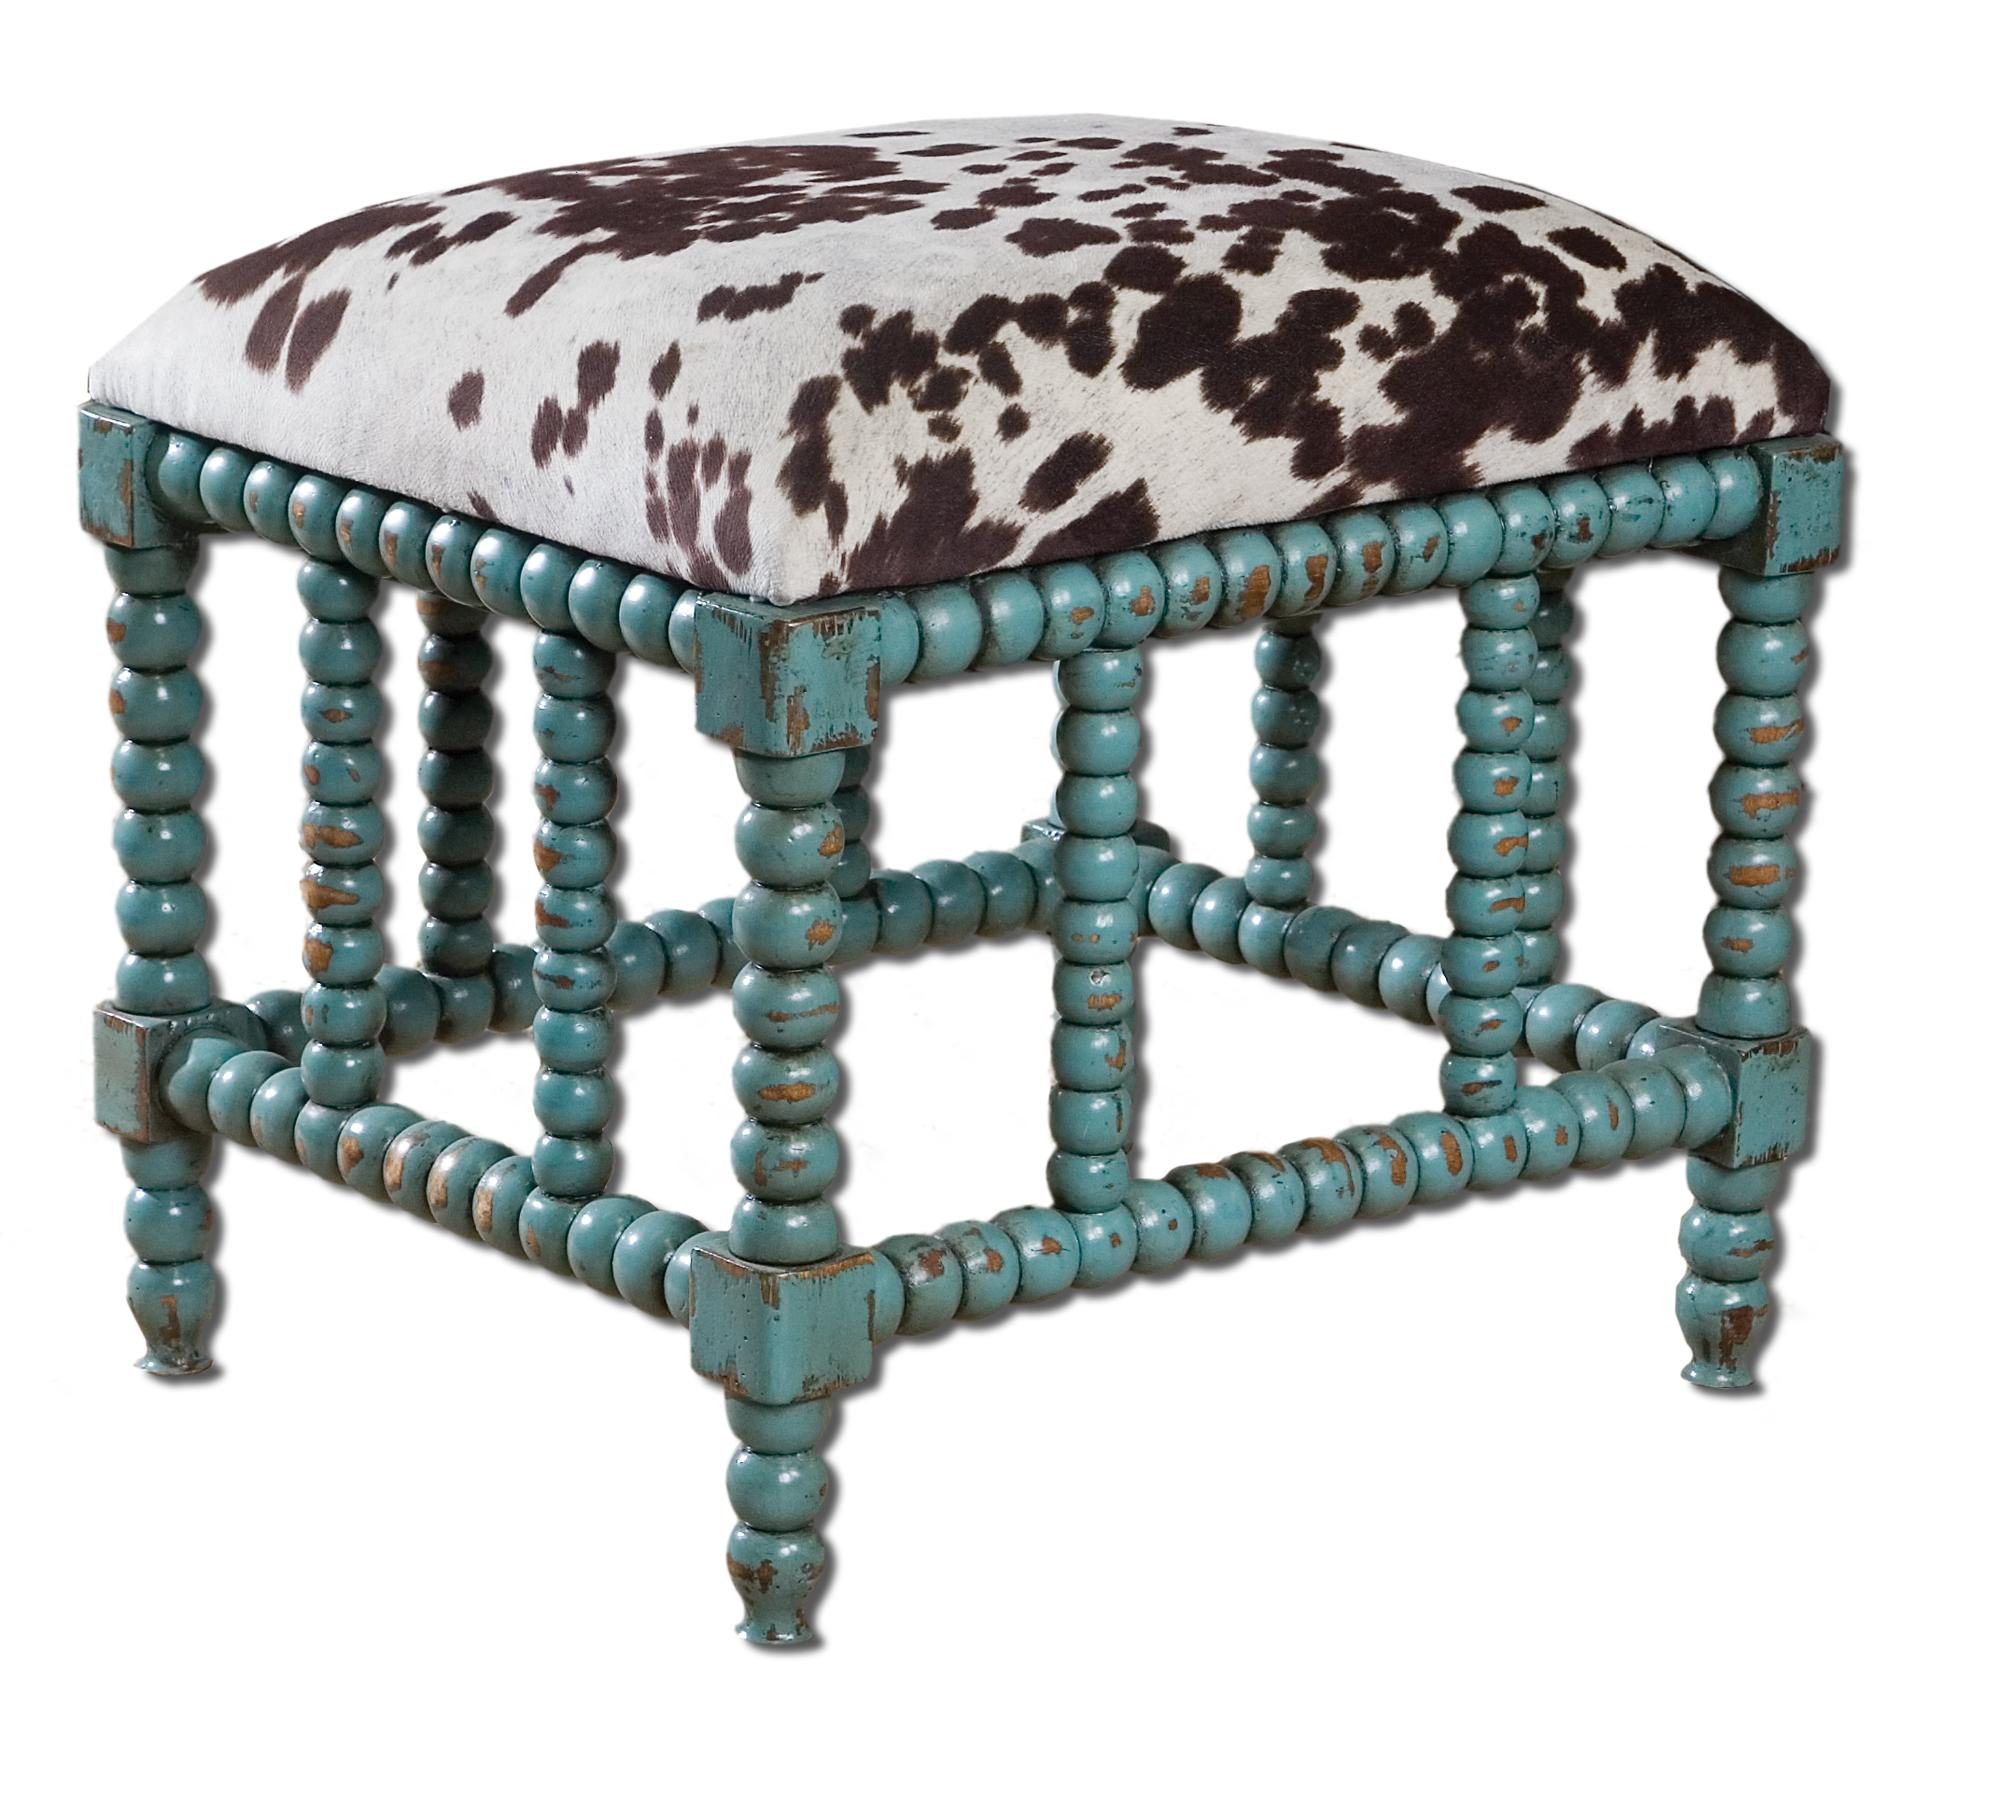 Uttermost Accent Furniture Chahna Small Bench - Item Number: 23605